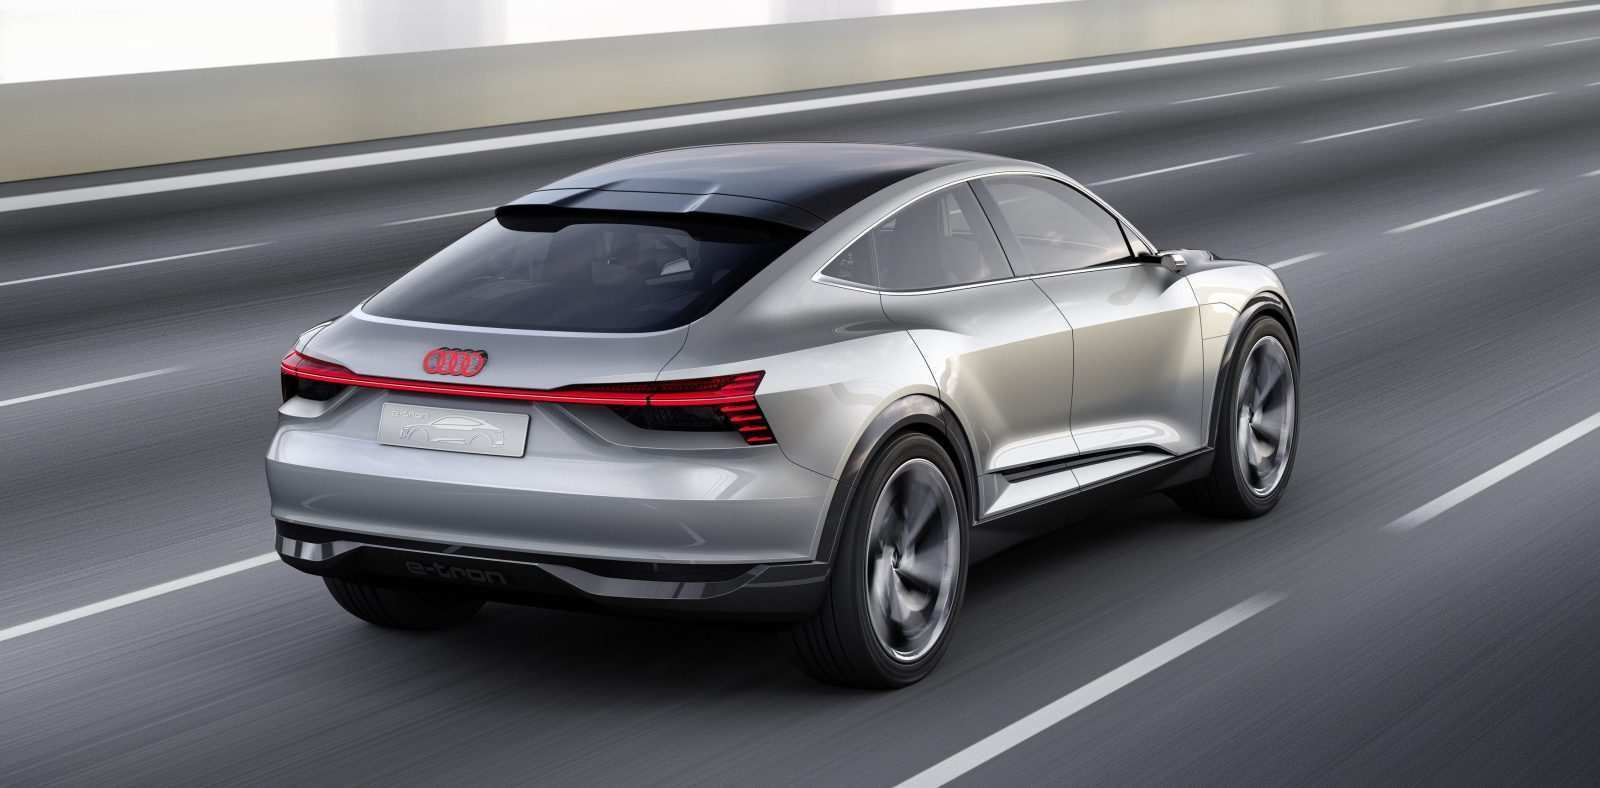 92 All New 2019 Audi Electric Car New Review by 2019 Audi Electric Car